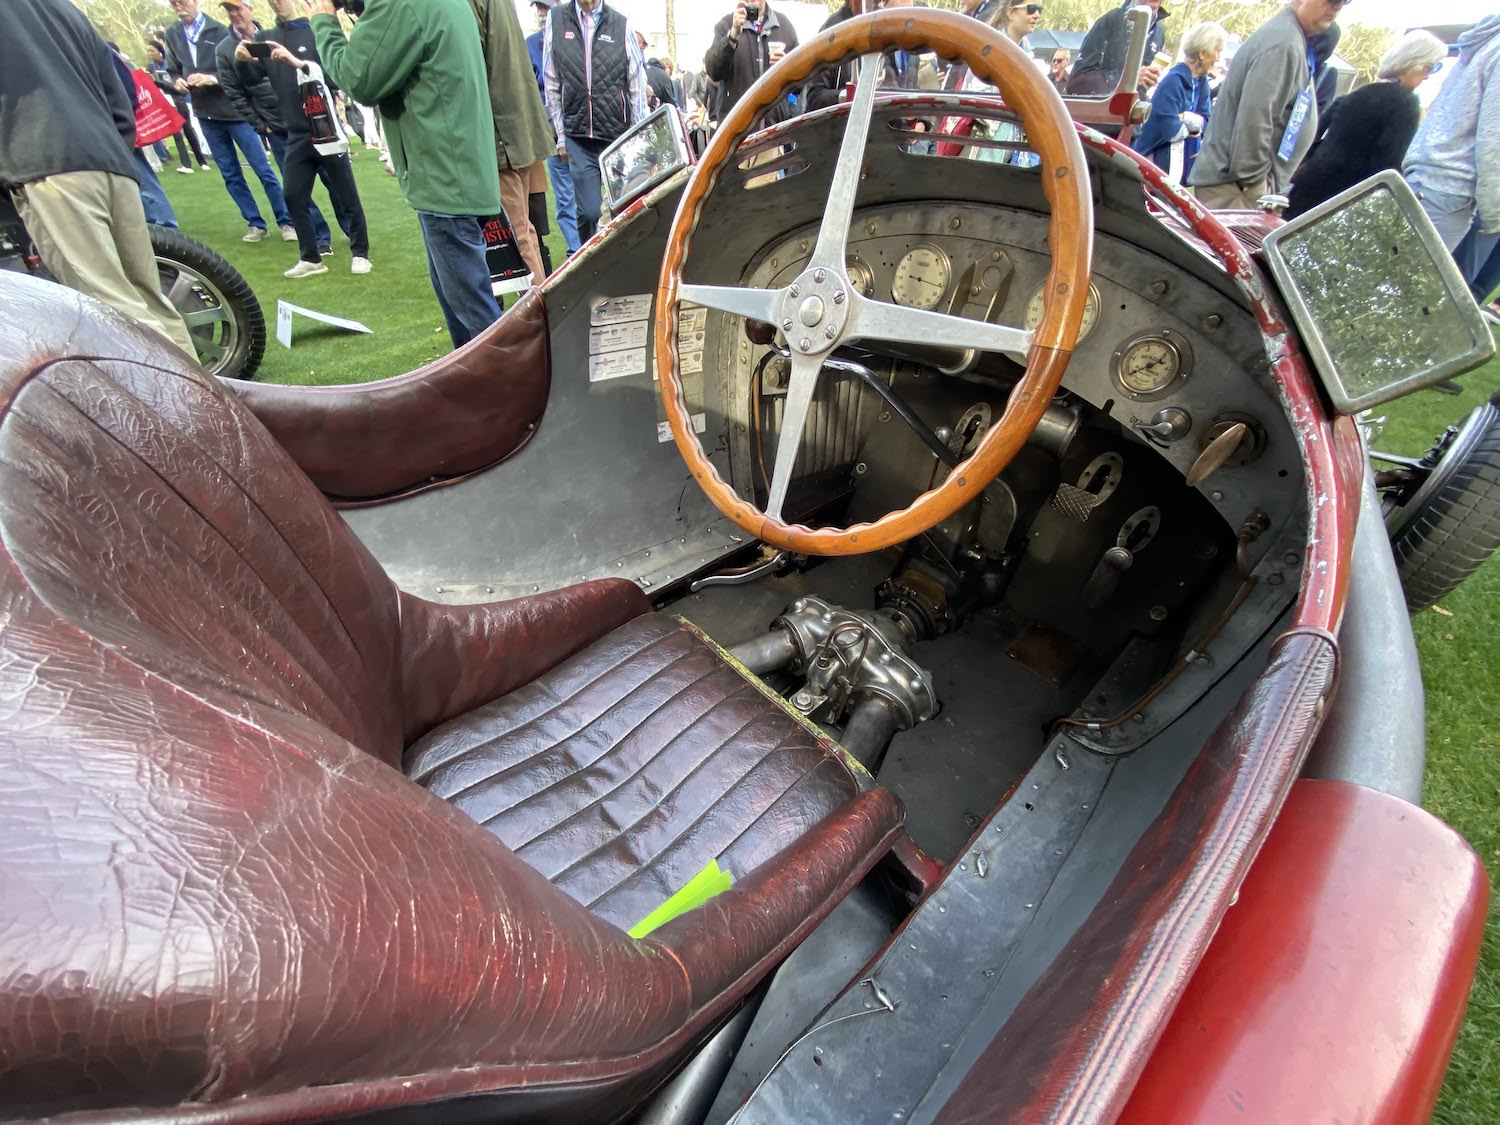 alfa romeo p3 vintage race car interior cockpit